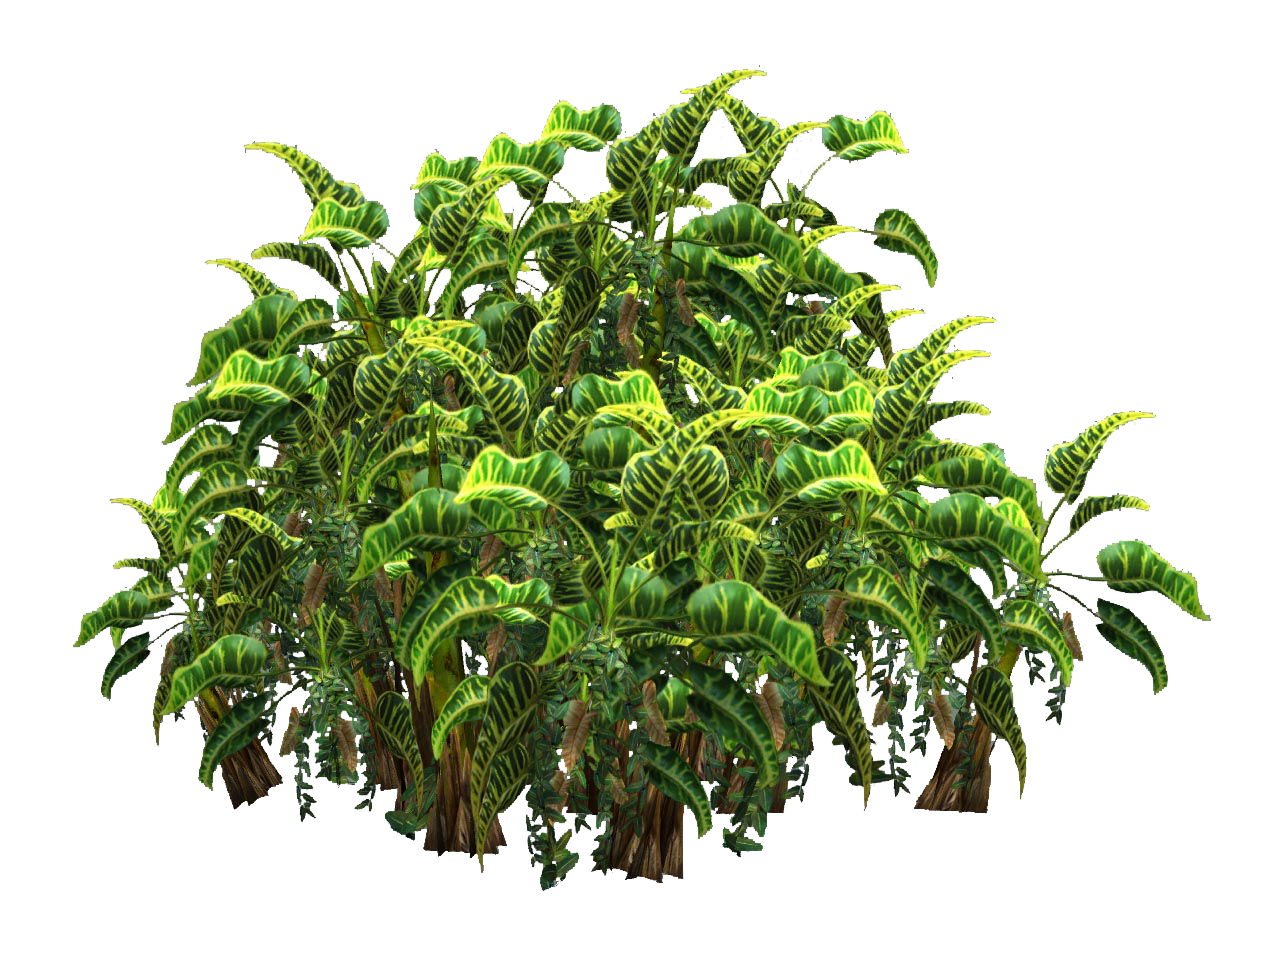 Plants png transparent top view #44921.